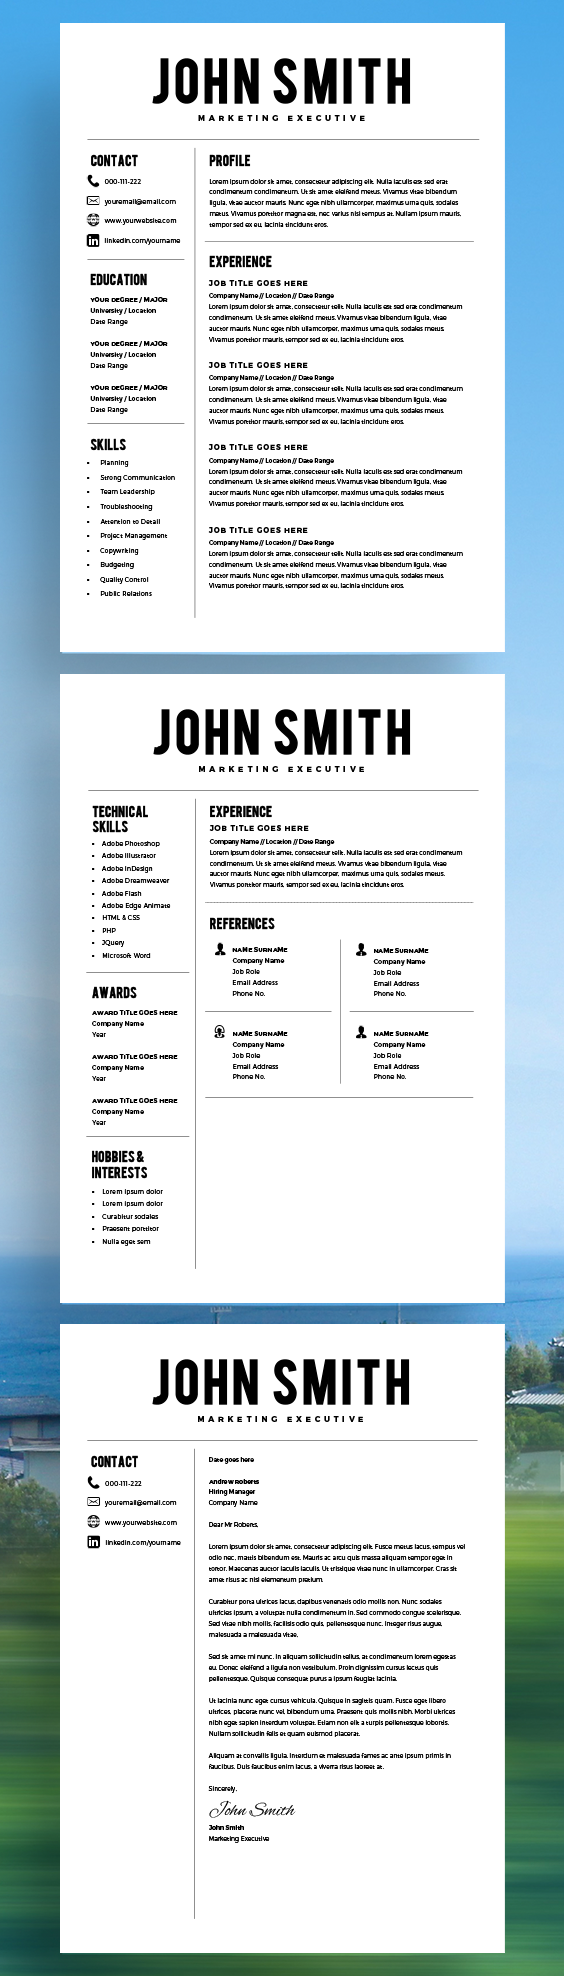 resume template resume builder cv template free cover letter ms word on - Microsoft Word Resume Templates For Mac